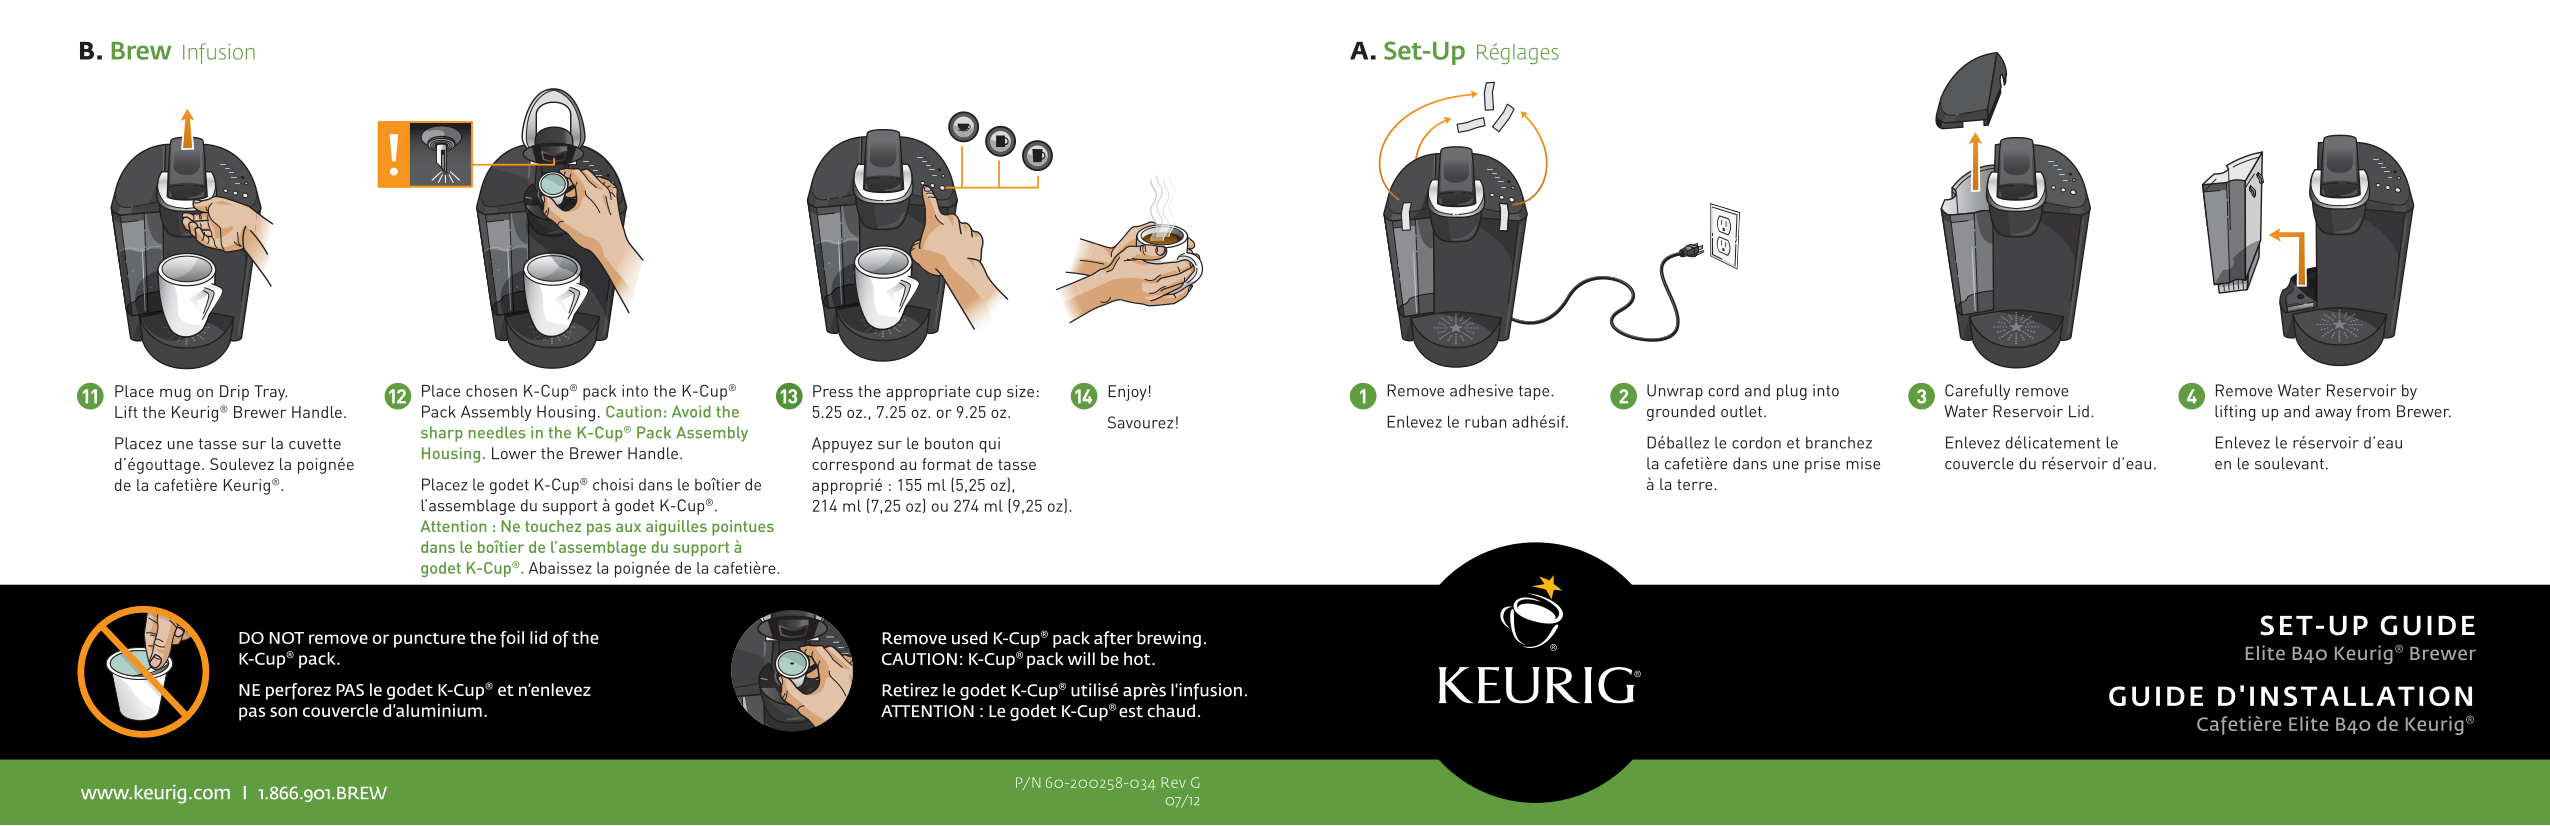 download free pdf for keurig elite b40 coffee maker manual rh umlib com keurig b40 manual pdf keurig manual model b40